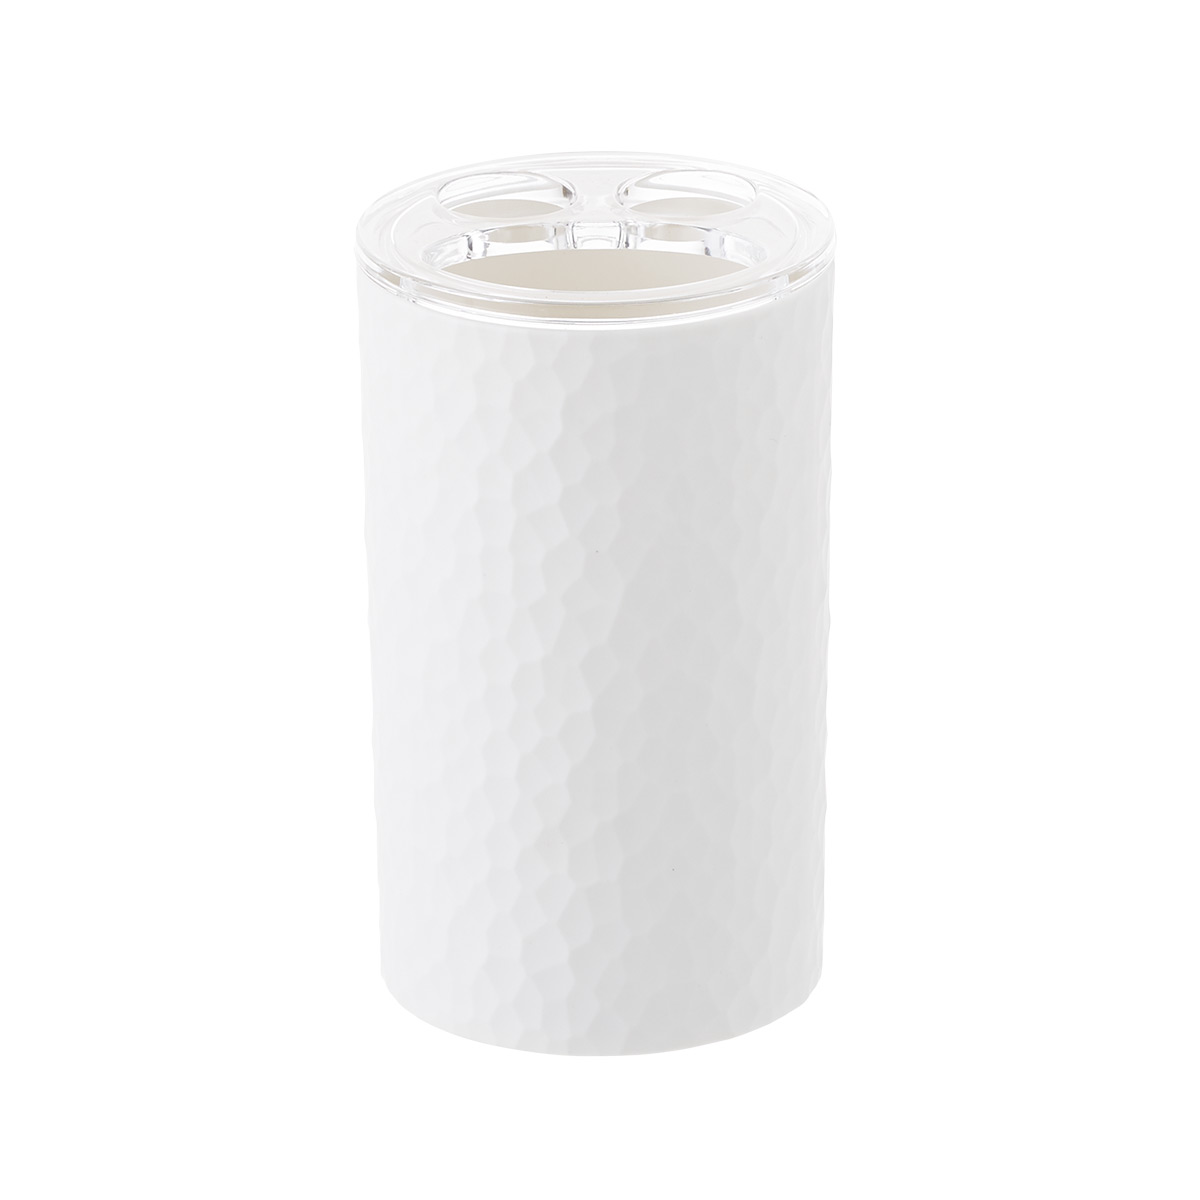 White Alpine Toothbrush Holder